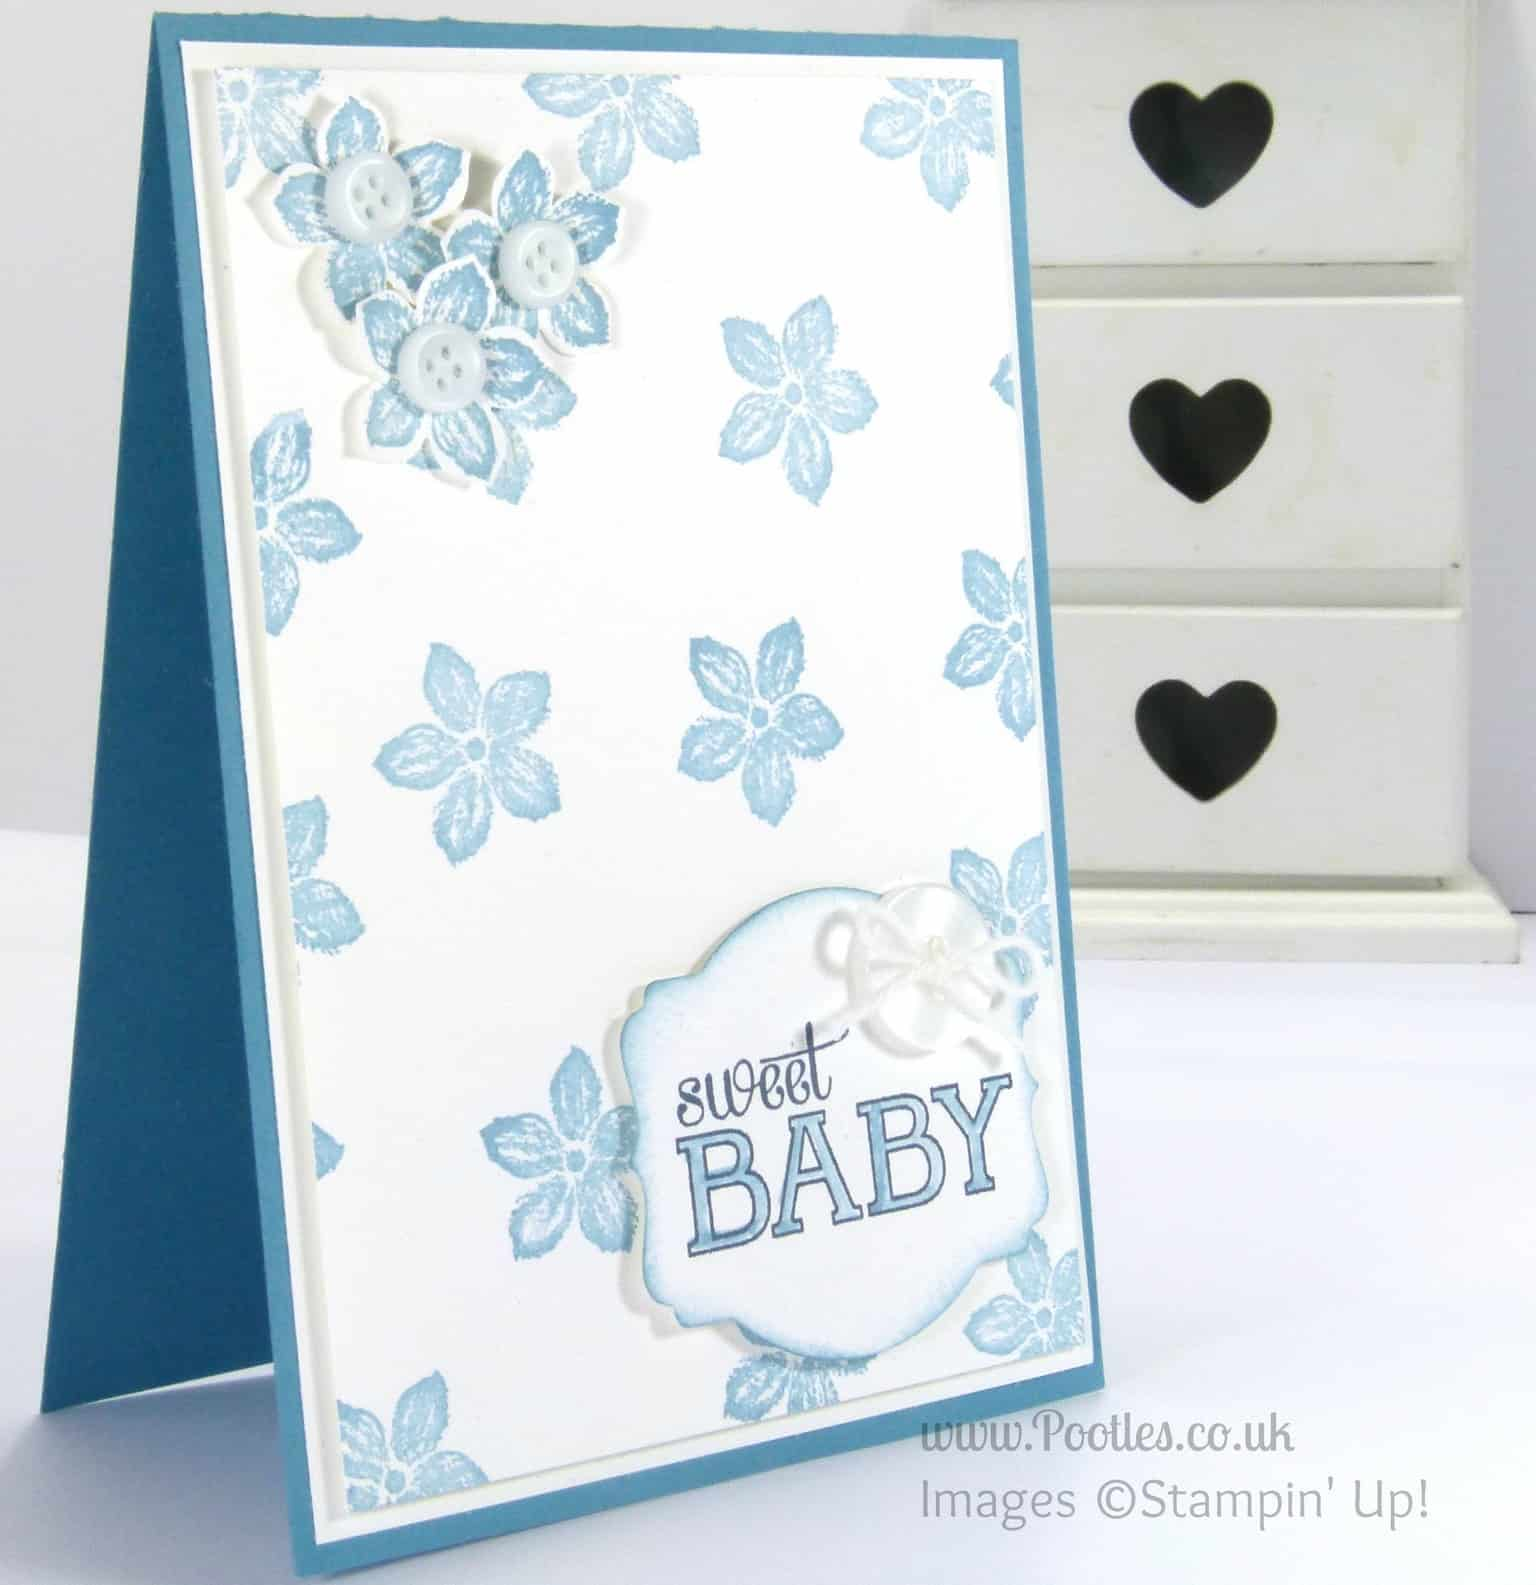 Stampin' Up! UK Independent Demonstrator - Pootles. Petite Sweet Baby Petals!